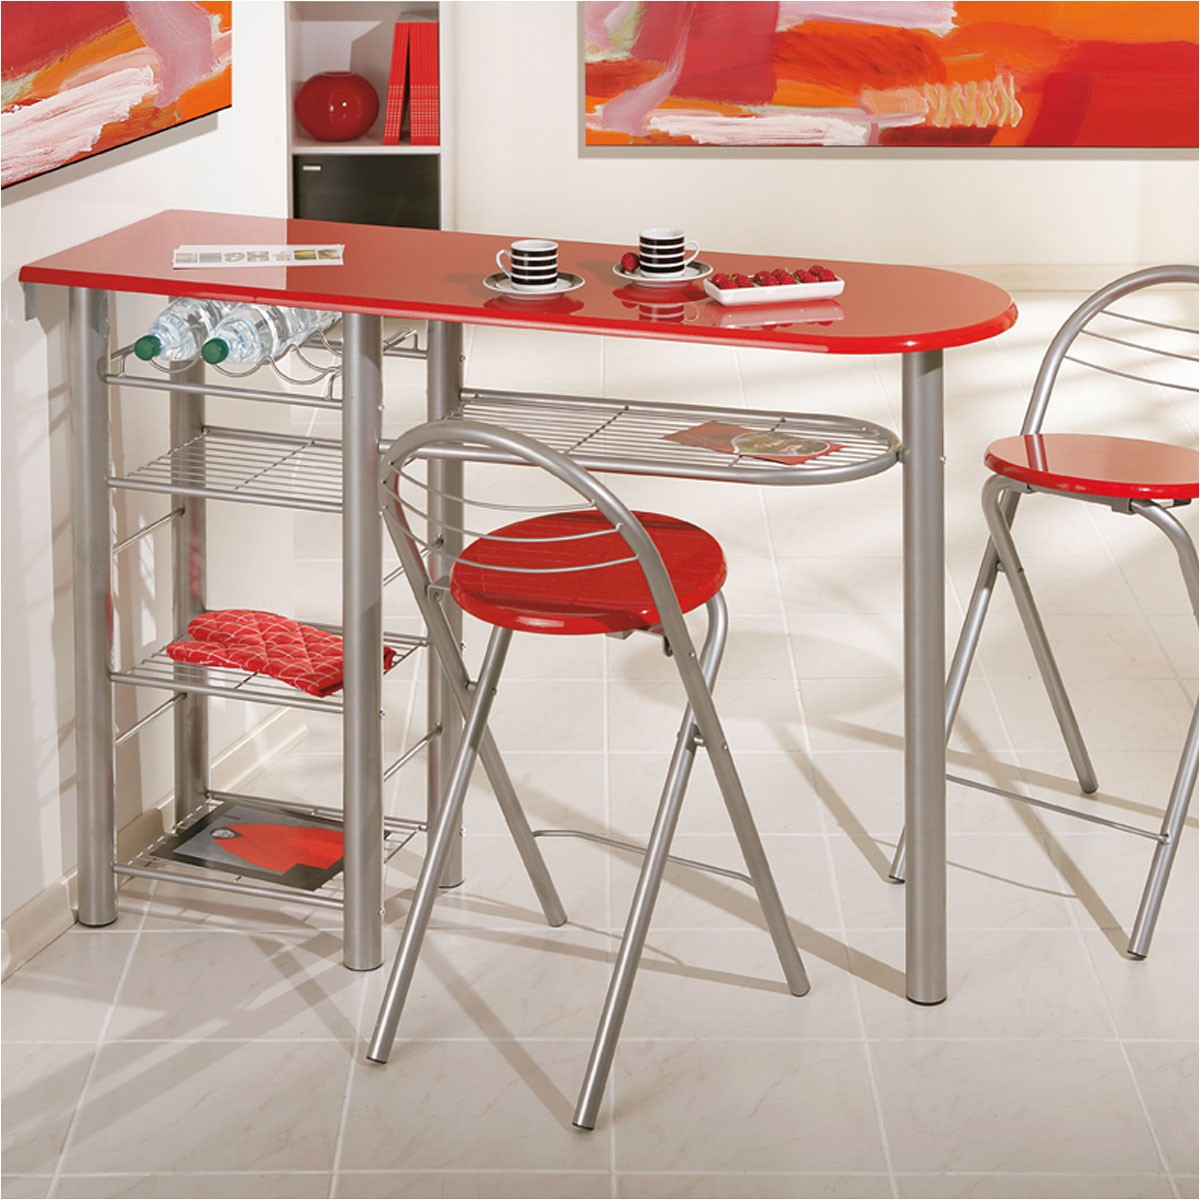 Table cuisine avec tabouret bar cuisine id es de for Cuisine table bar